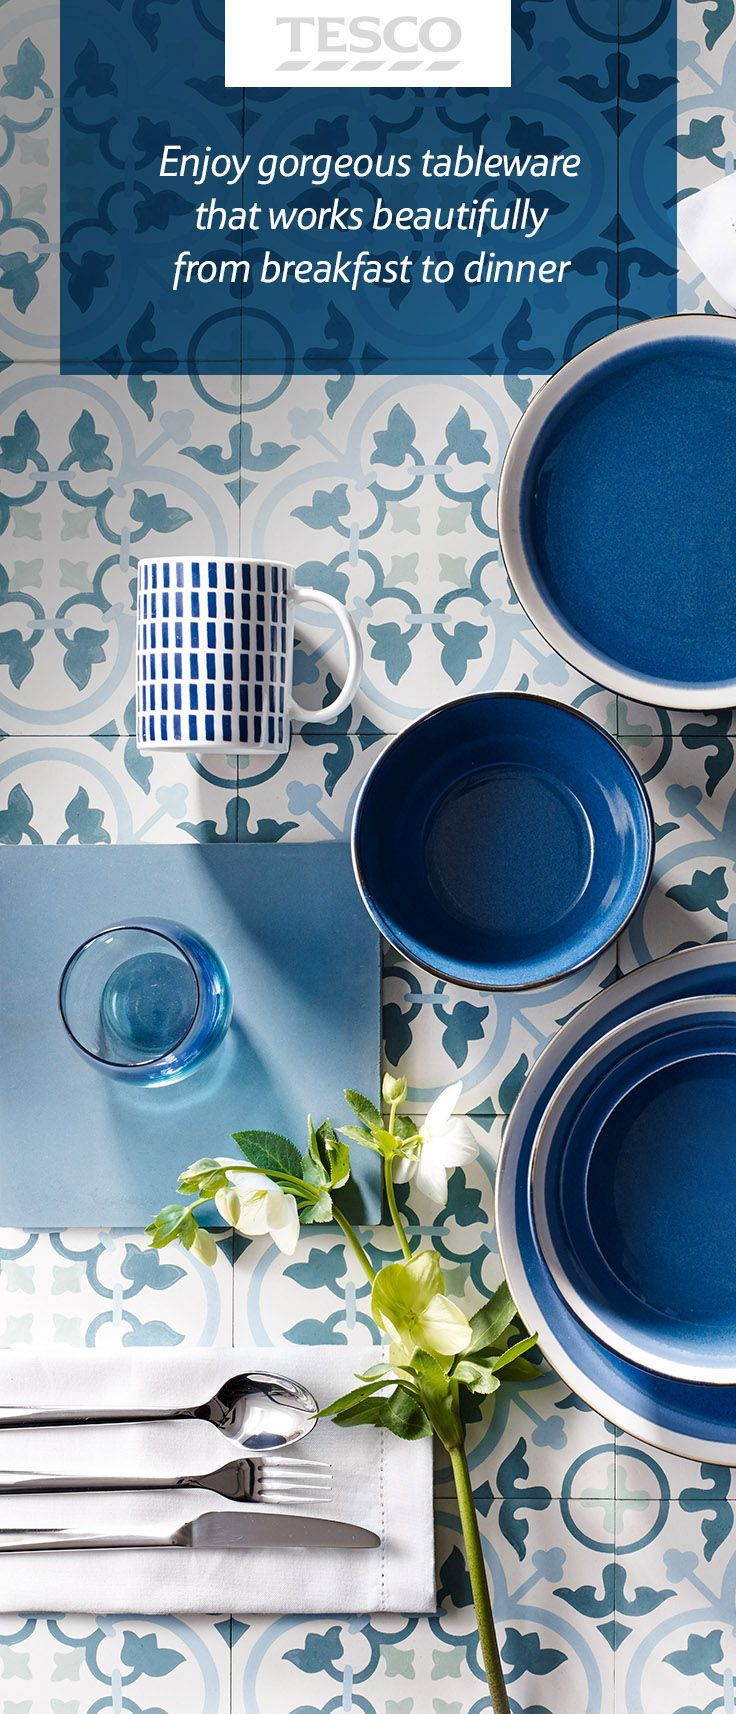 From Santorini mugs to a Blue Sahara dinner set, our latest spring/summer home range will give your dining table an instantly modern feel.